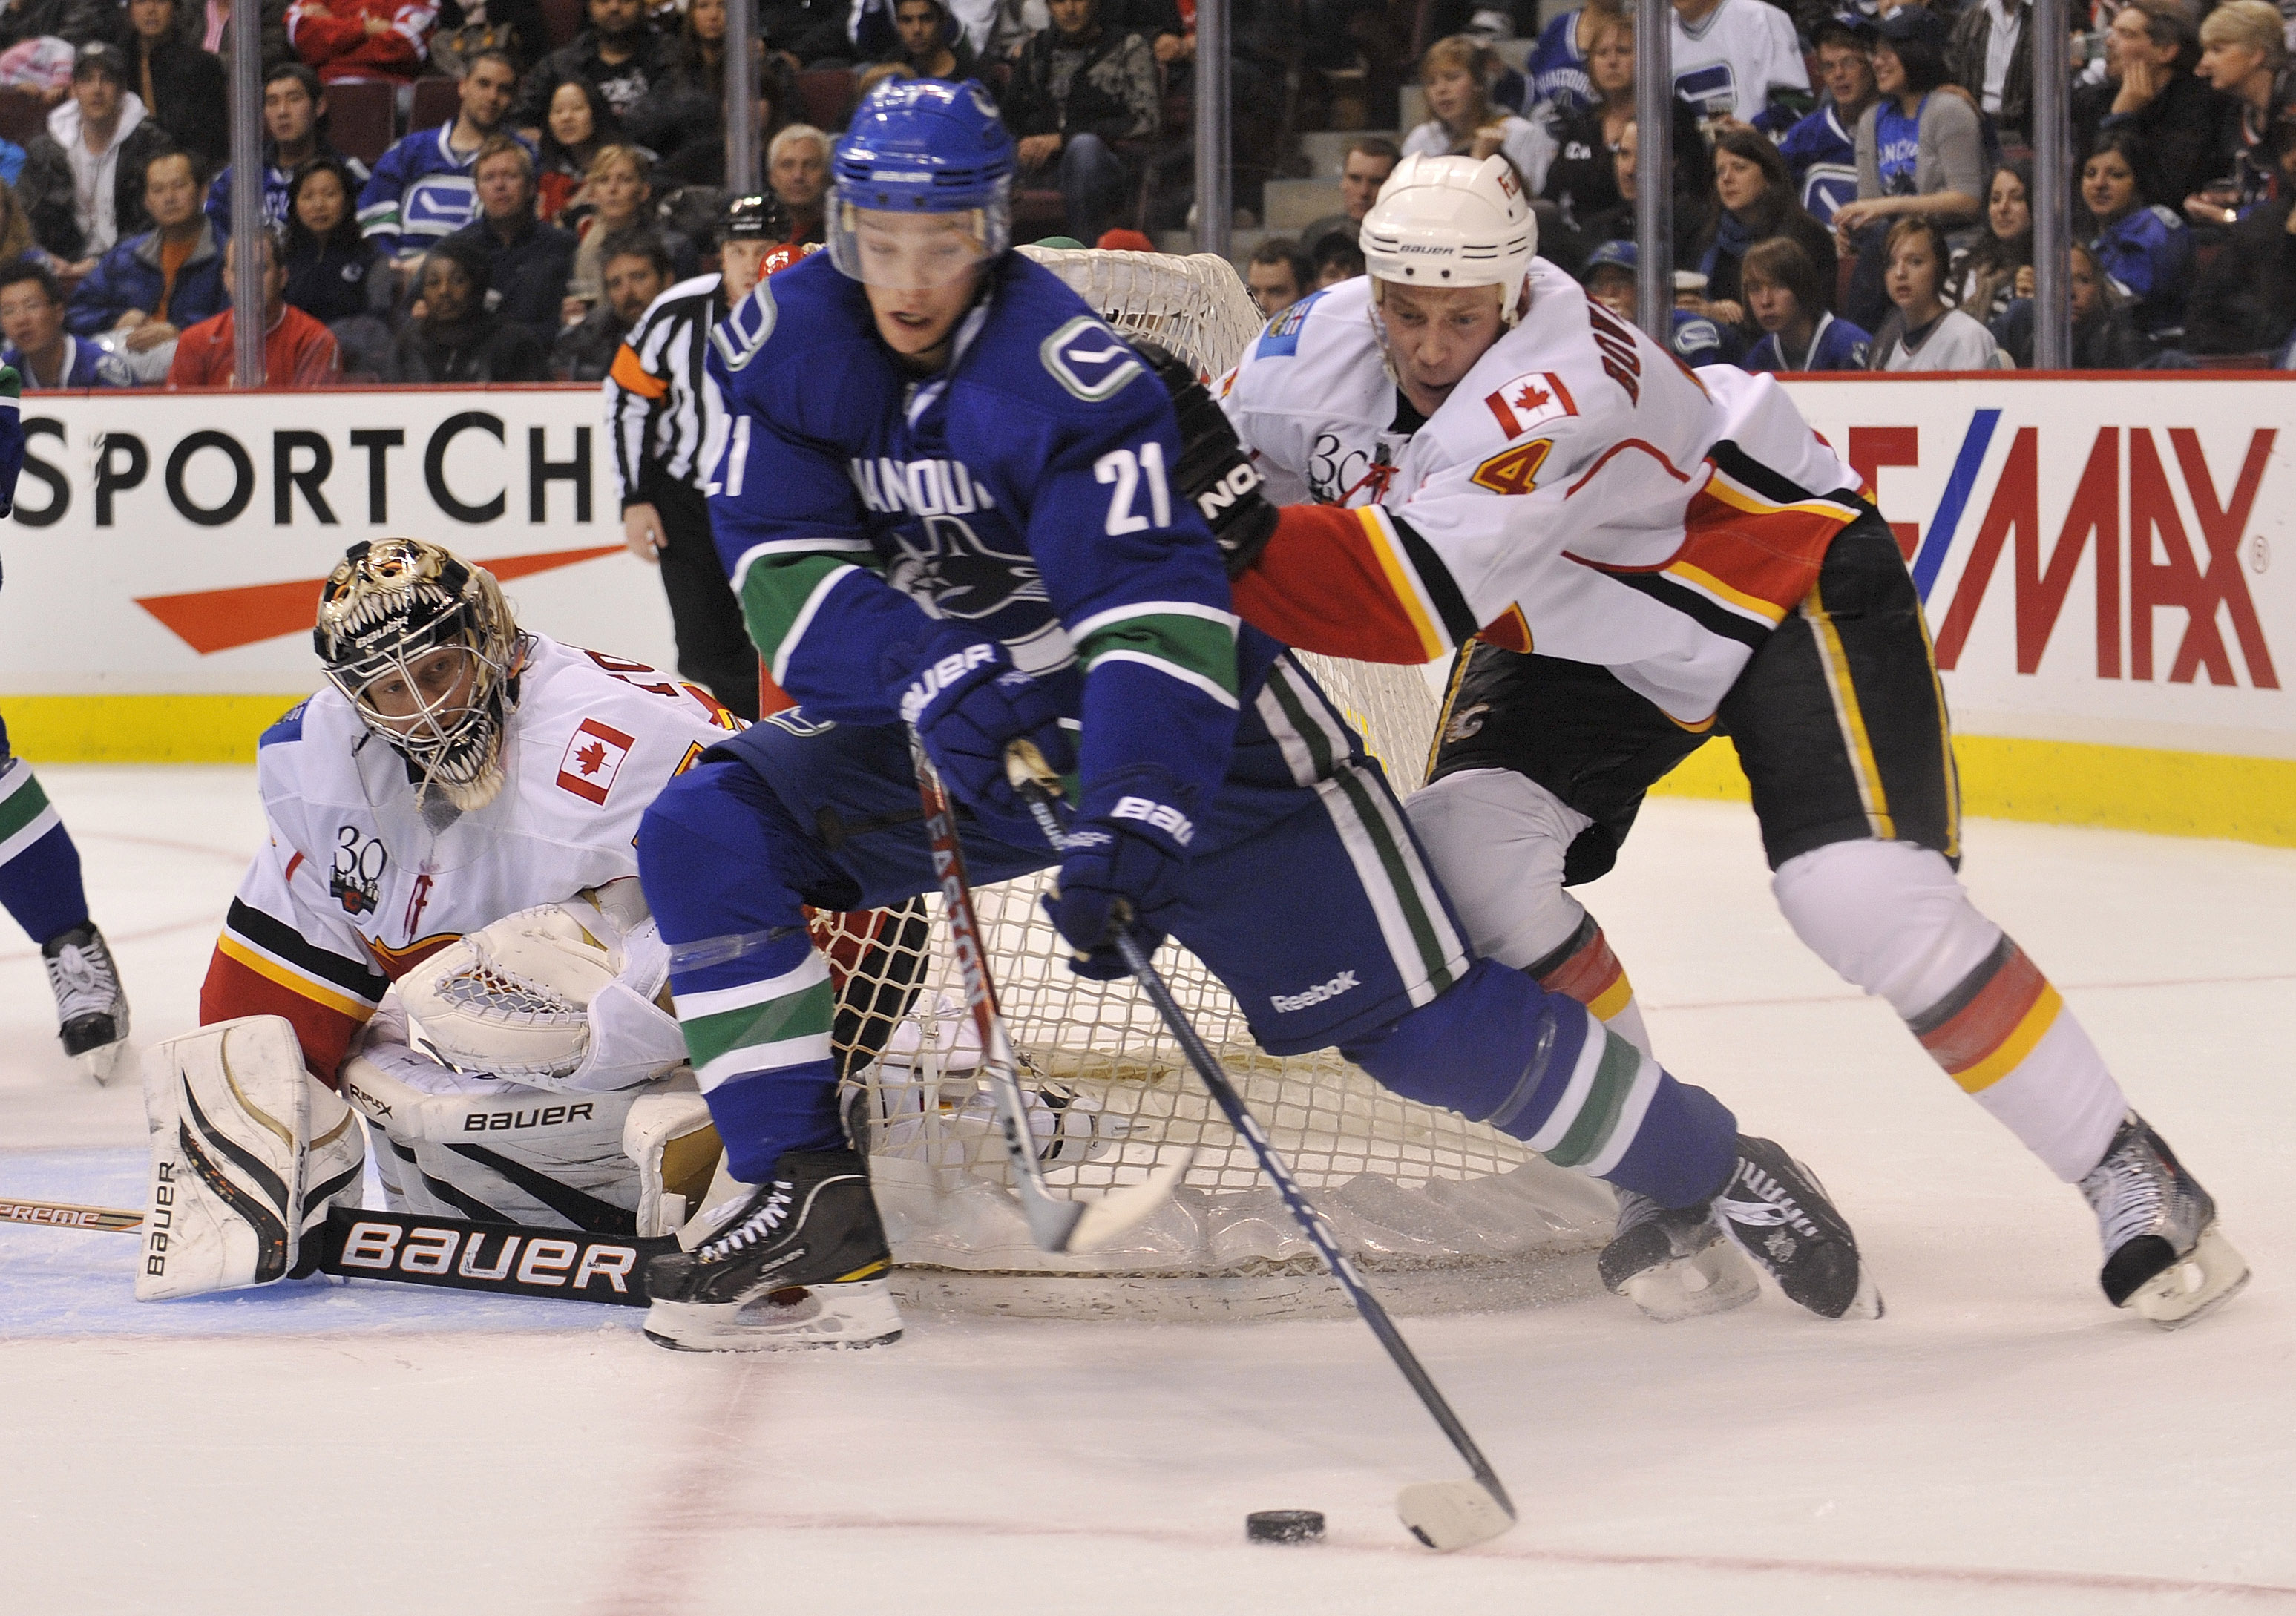 VANCOUVER, CANADA - MARCH 14: Goalie Vesa Toskala #35 of the Calgary Flames keeps an eye on Mason Raymond #21 of the Vancouver Canucks as he comes from behind the net while being checked by Flames Jay Bouwmeester #4 during the second period of NHL action